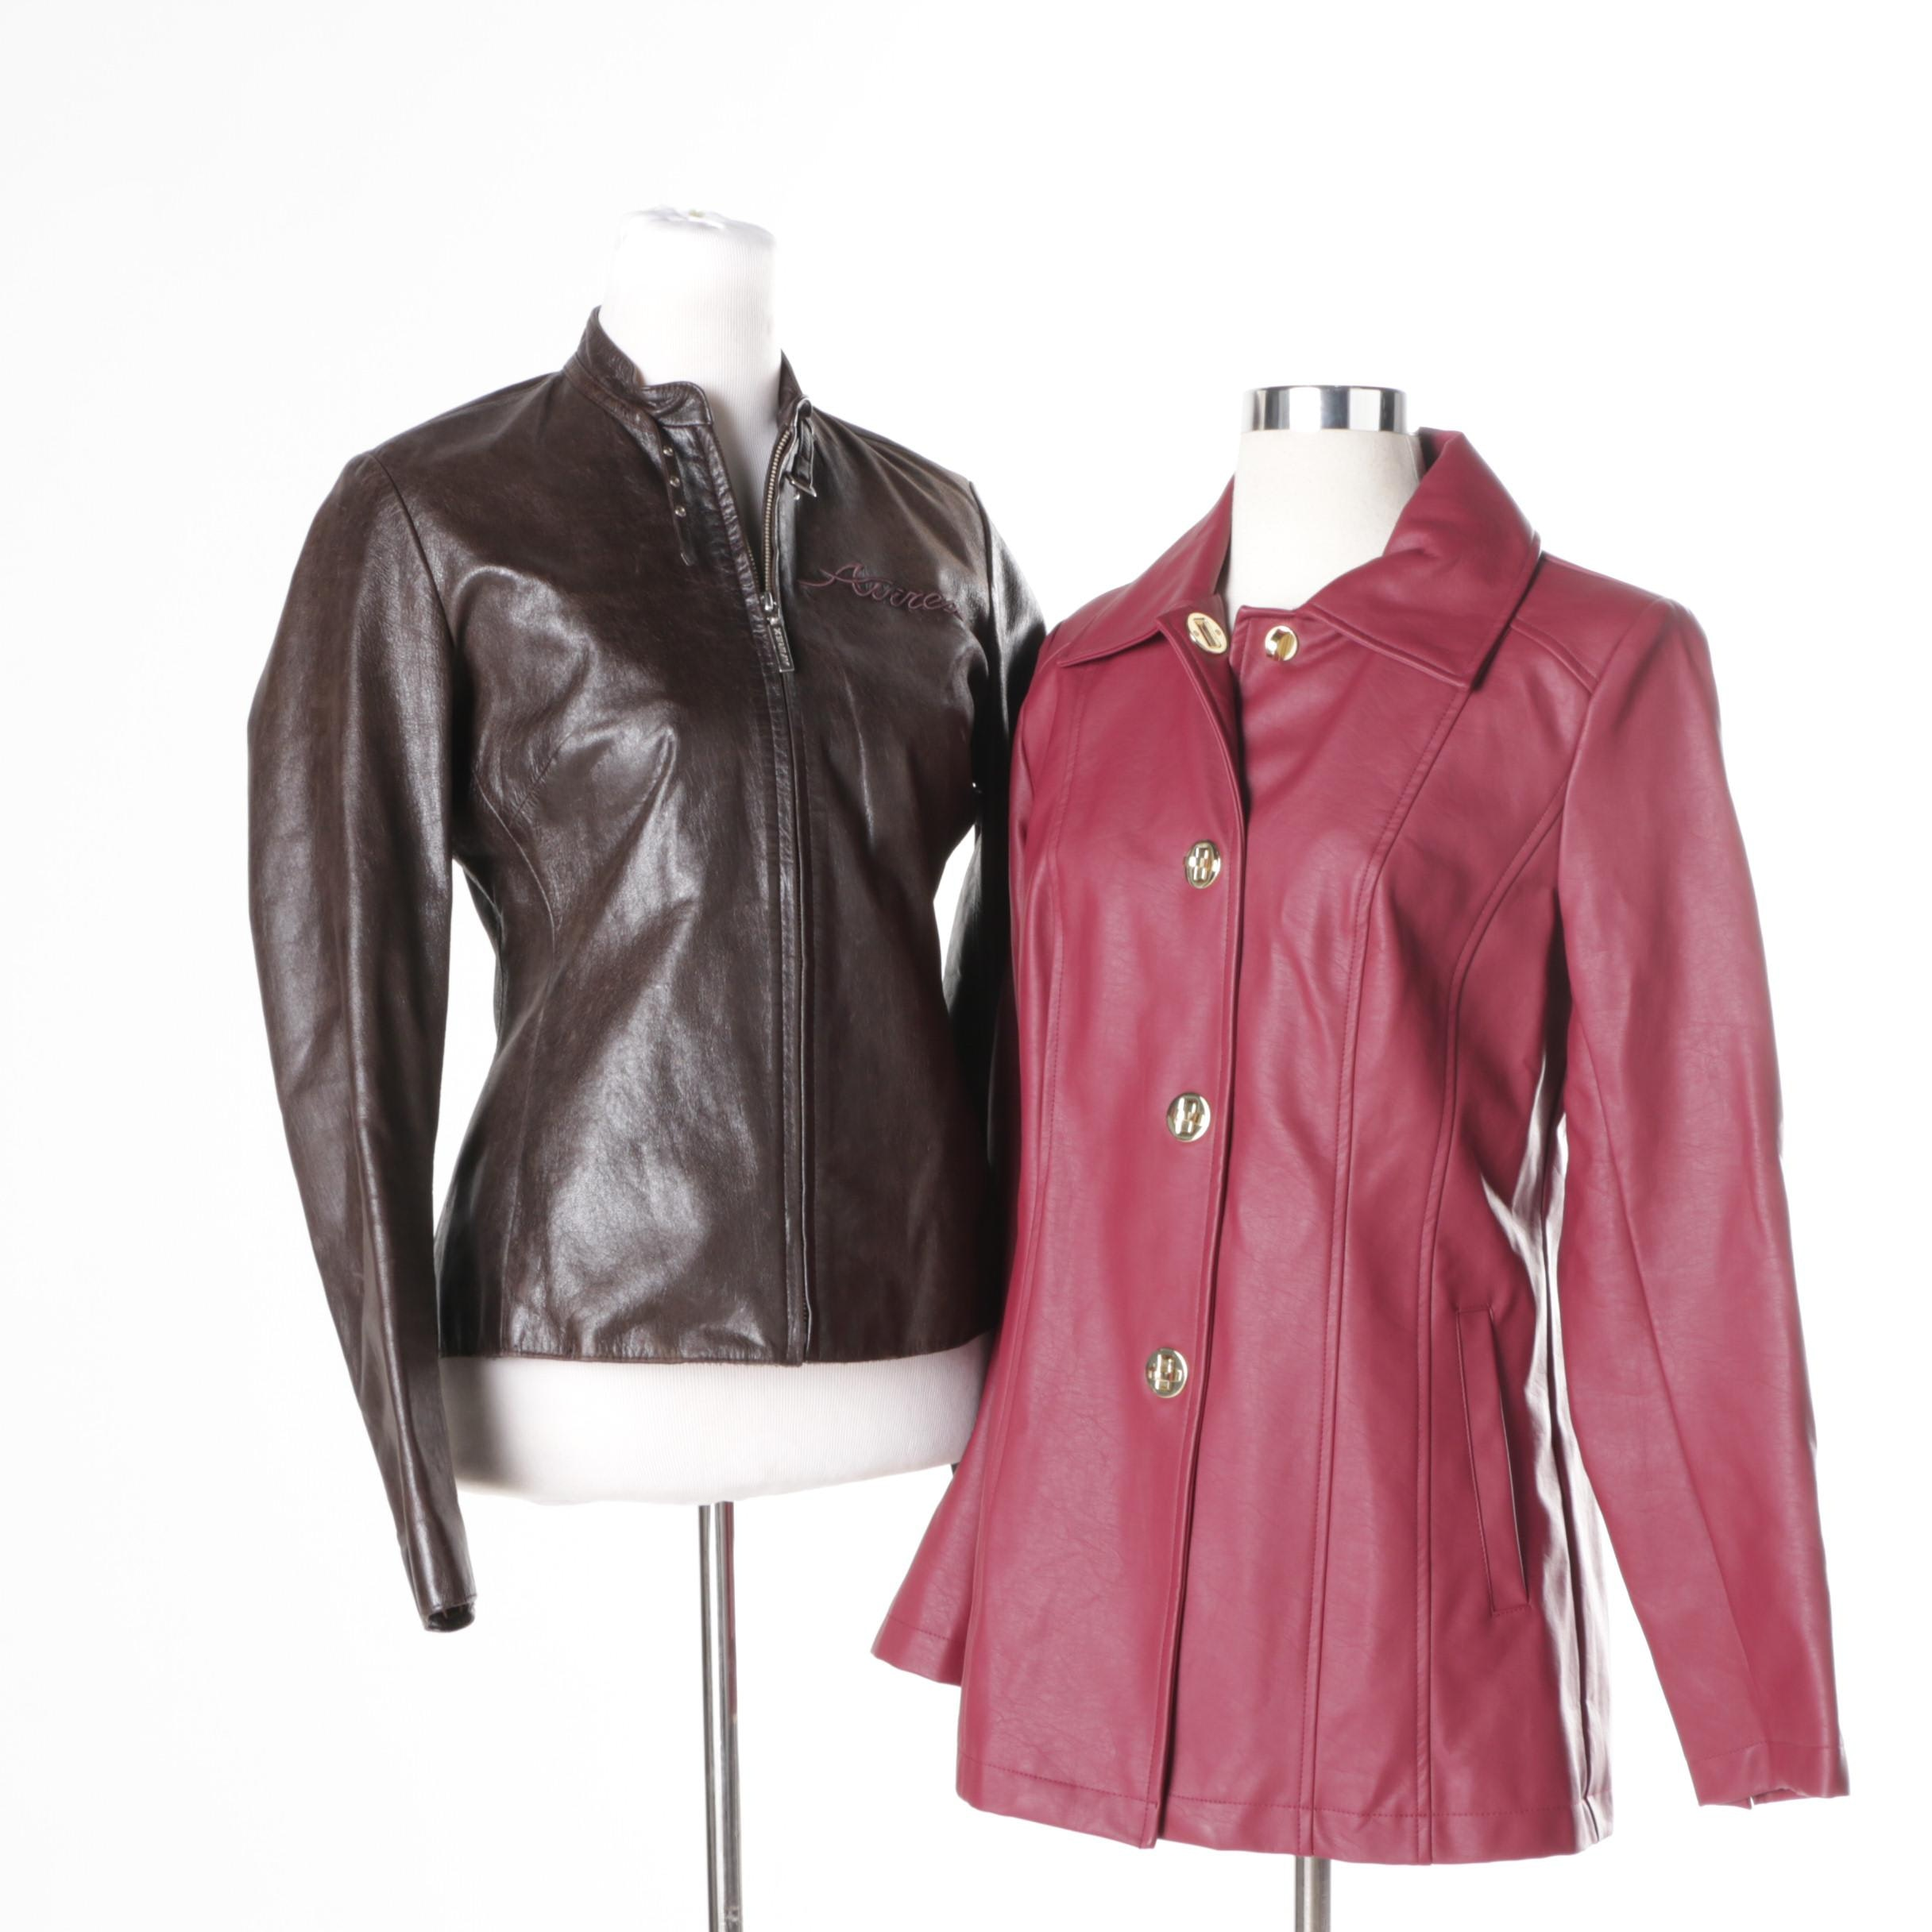 Women's Leather Jackets Including Avirex